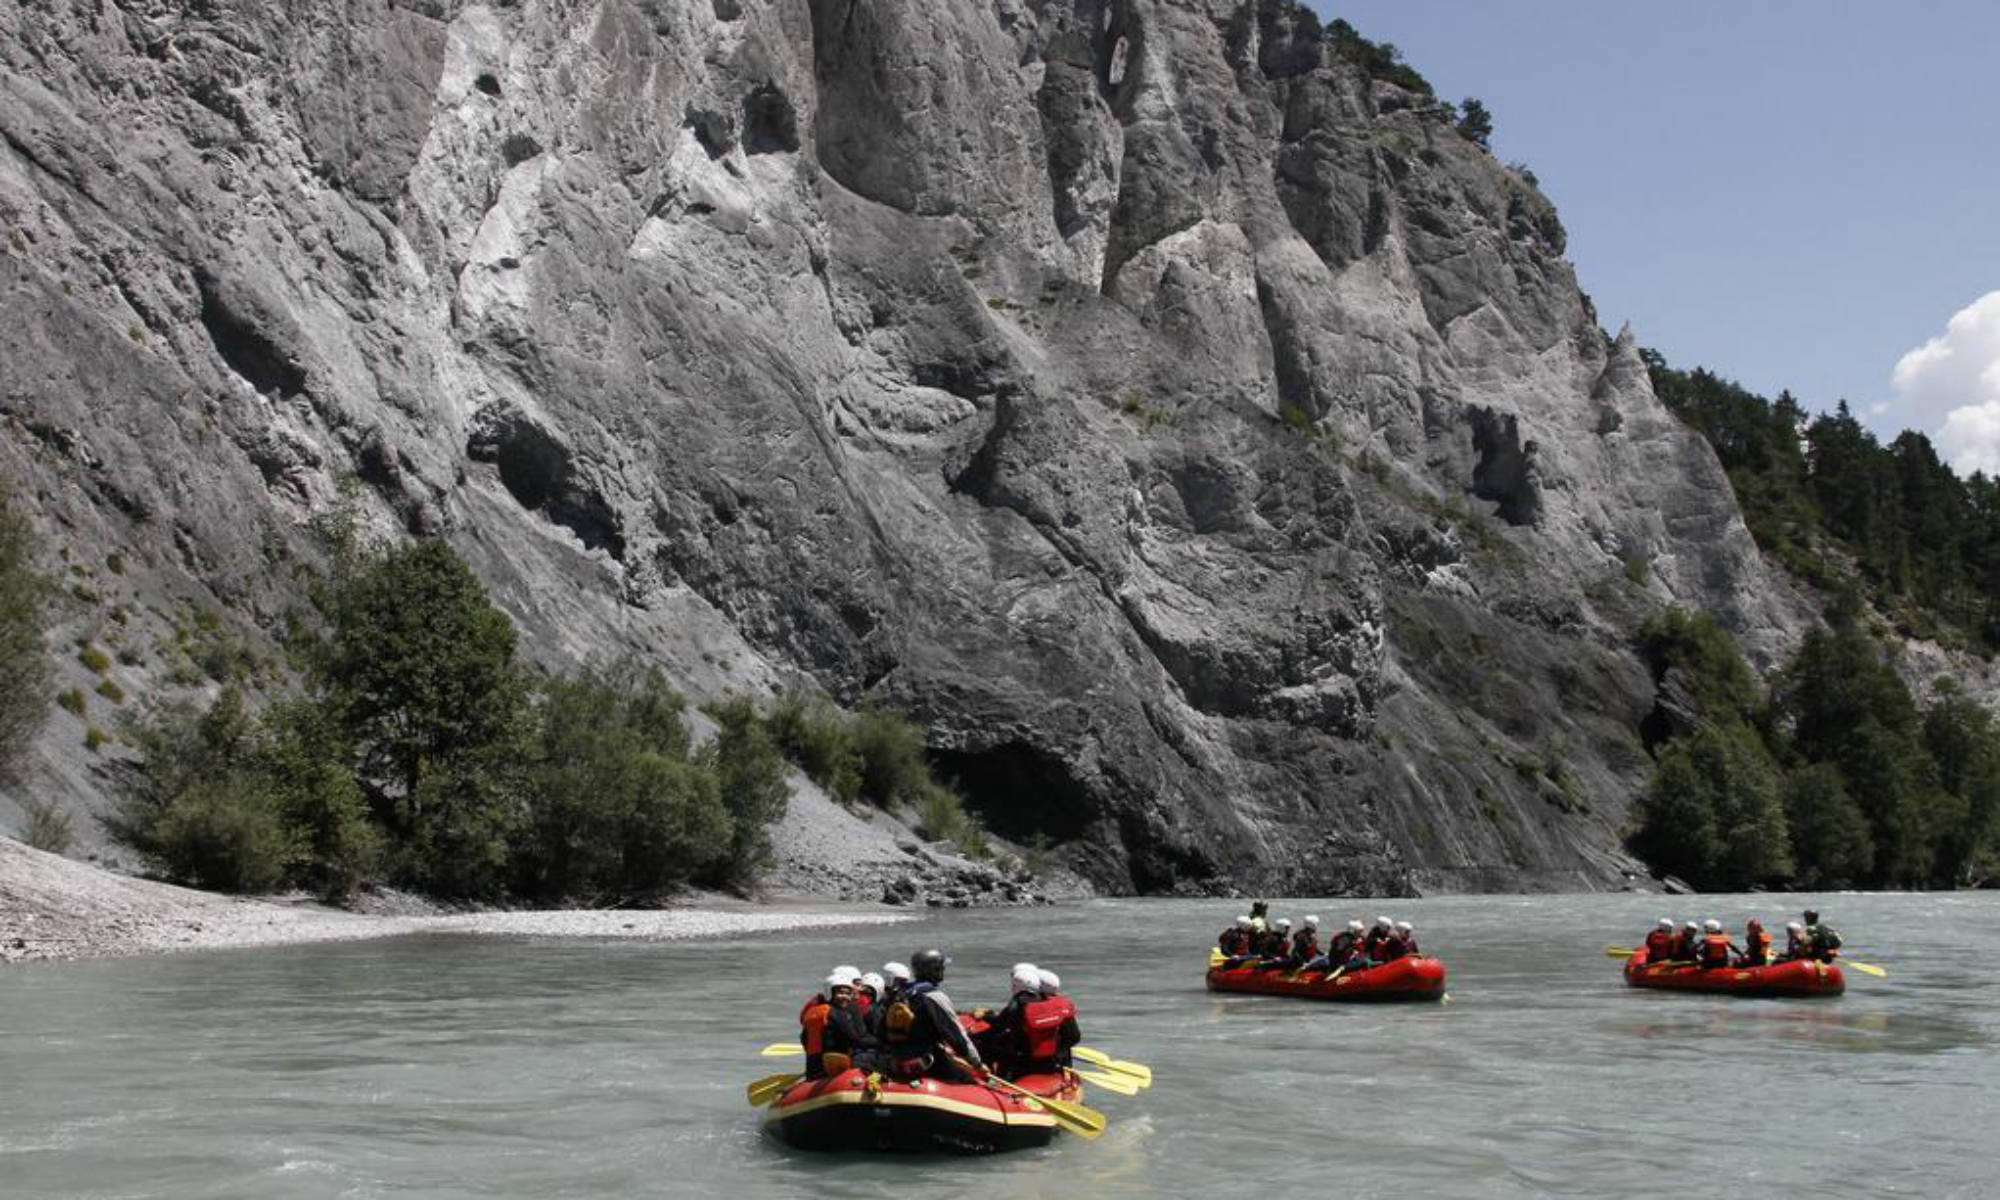 Several groups of people are white water rafting on the Vorderrhein in Switzerland.